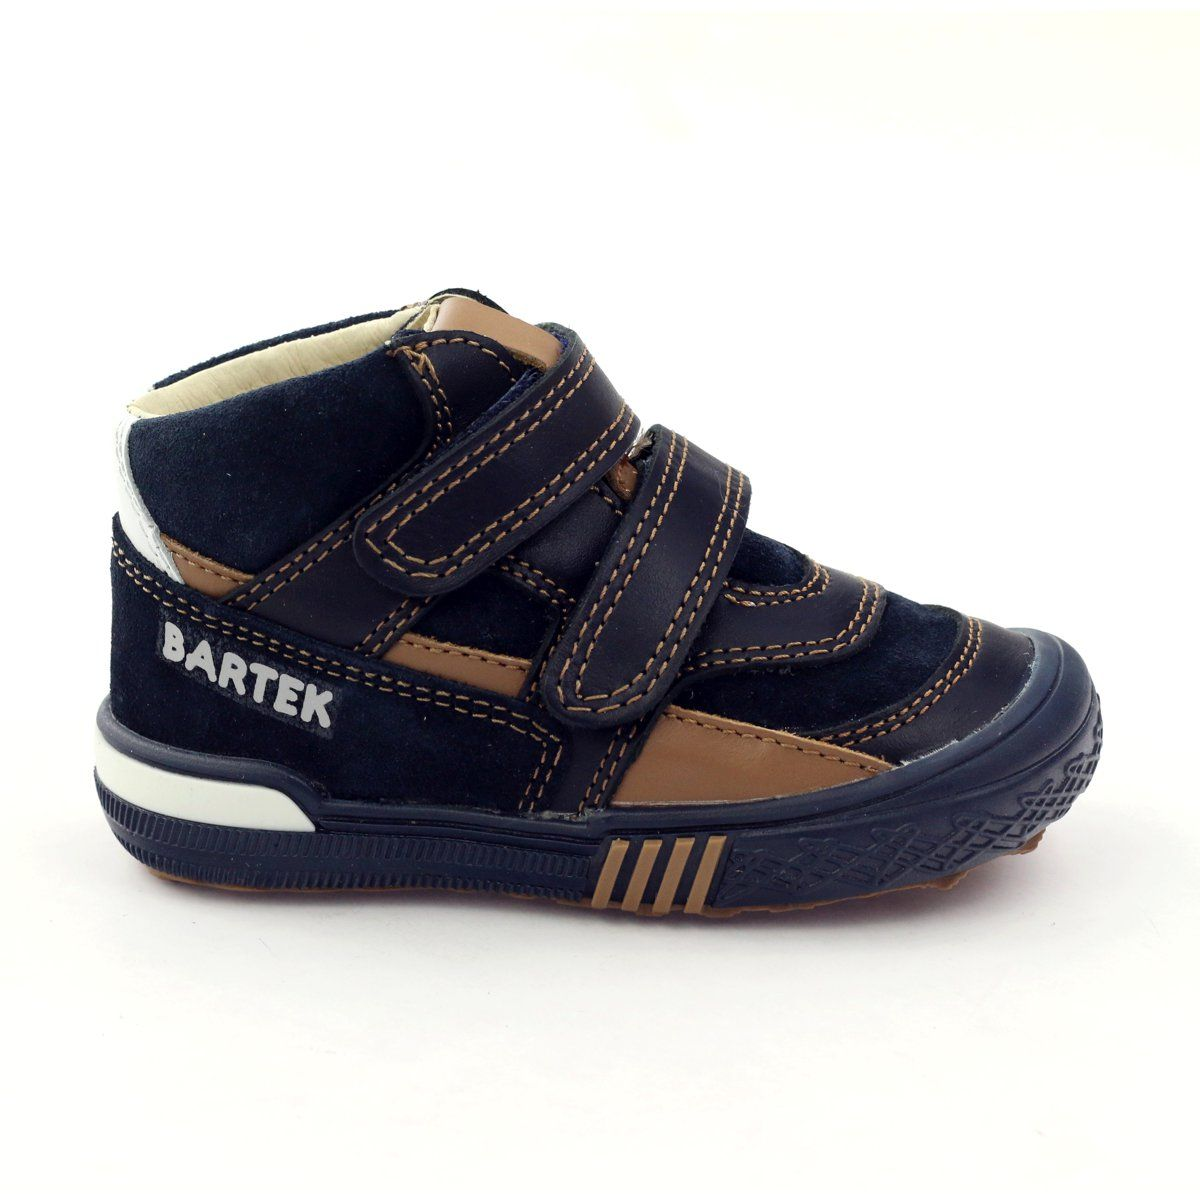 Preventive Shoes Bartek 91756 New Navy Brown White Childrens Boots Kid Shoes Childrens Shoes